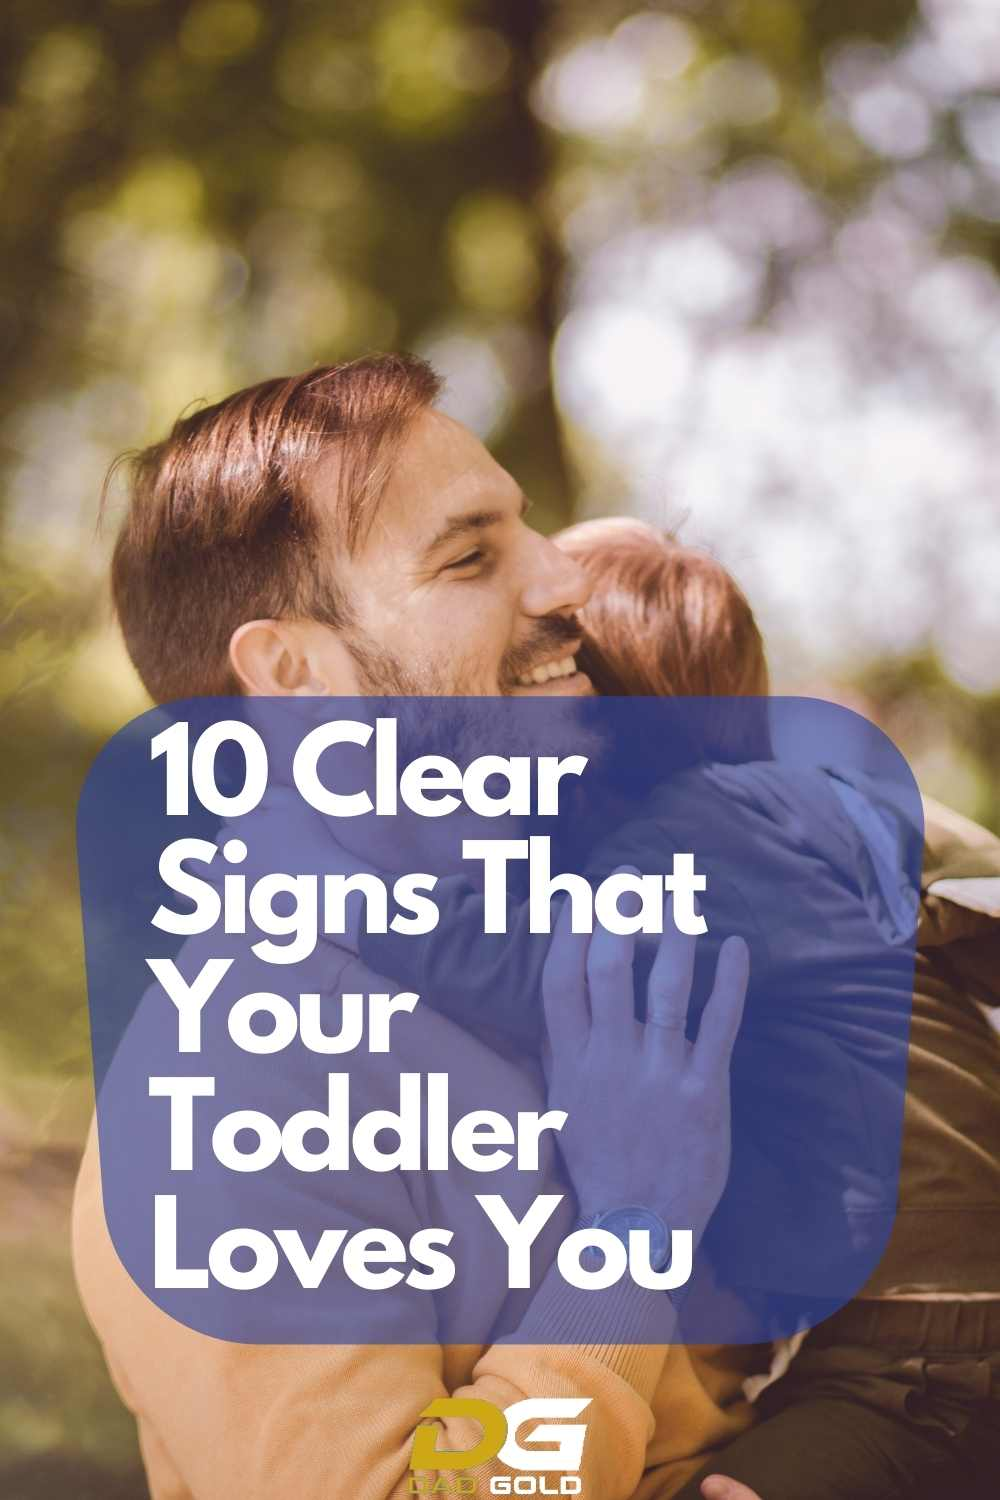 Looking for signs that your toddler loves you? Whilst they are learning to show emotions, here are my top 10 signs that your toddler is trying to show you love!